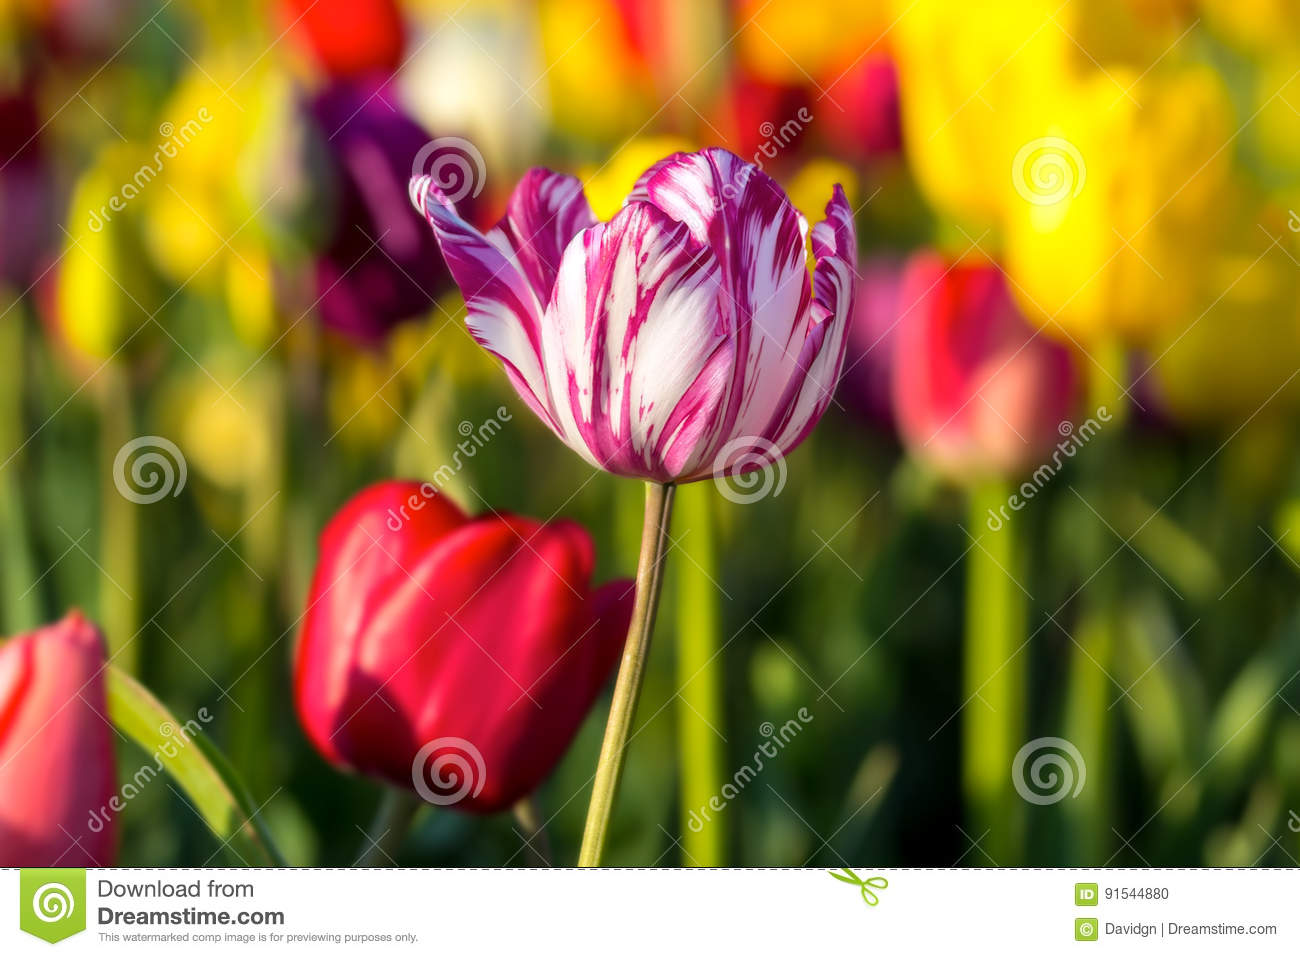 White Tulip Flower With Pink Stripes Stock Photo Image Of Oregon